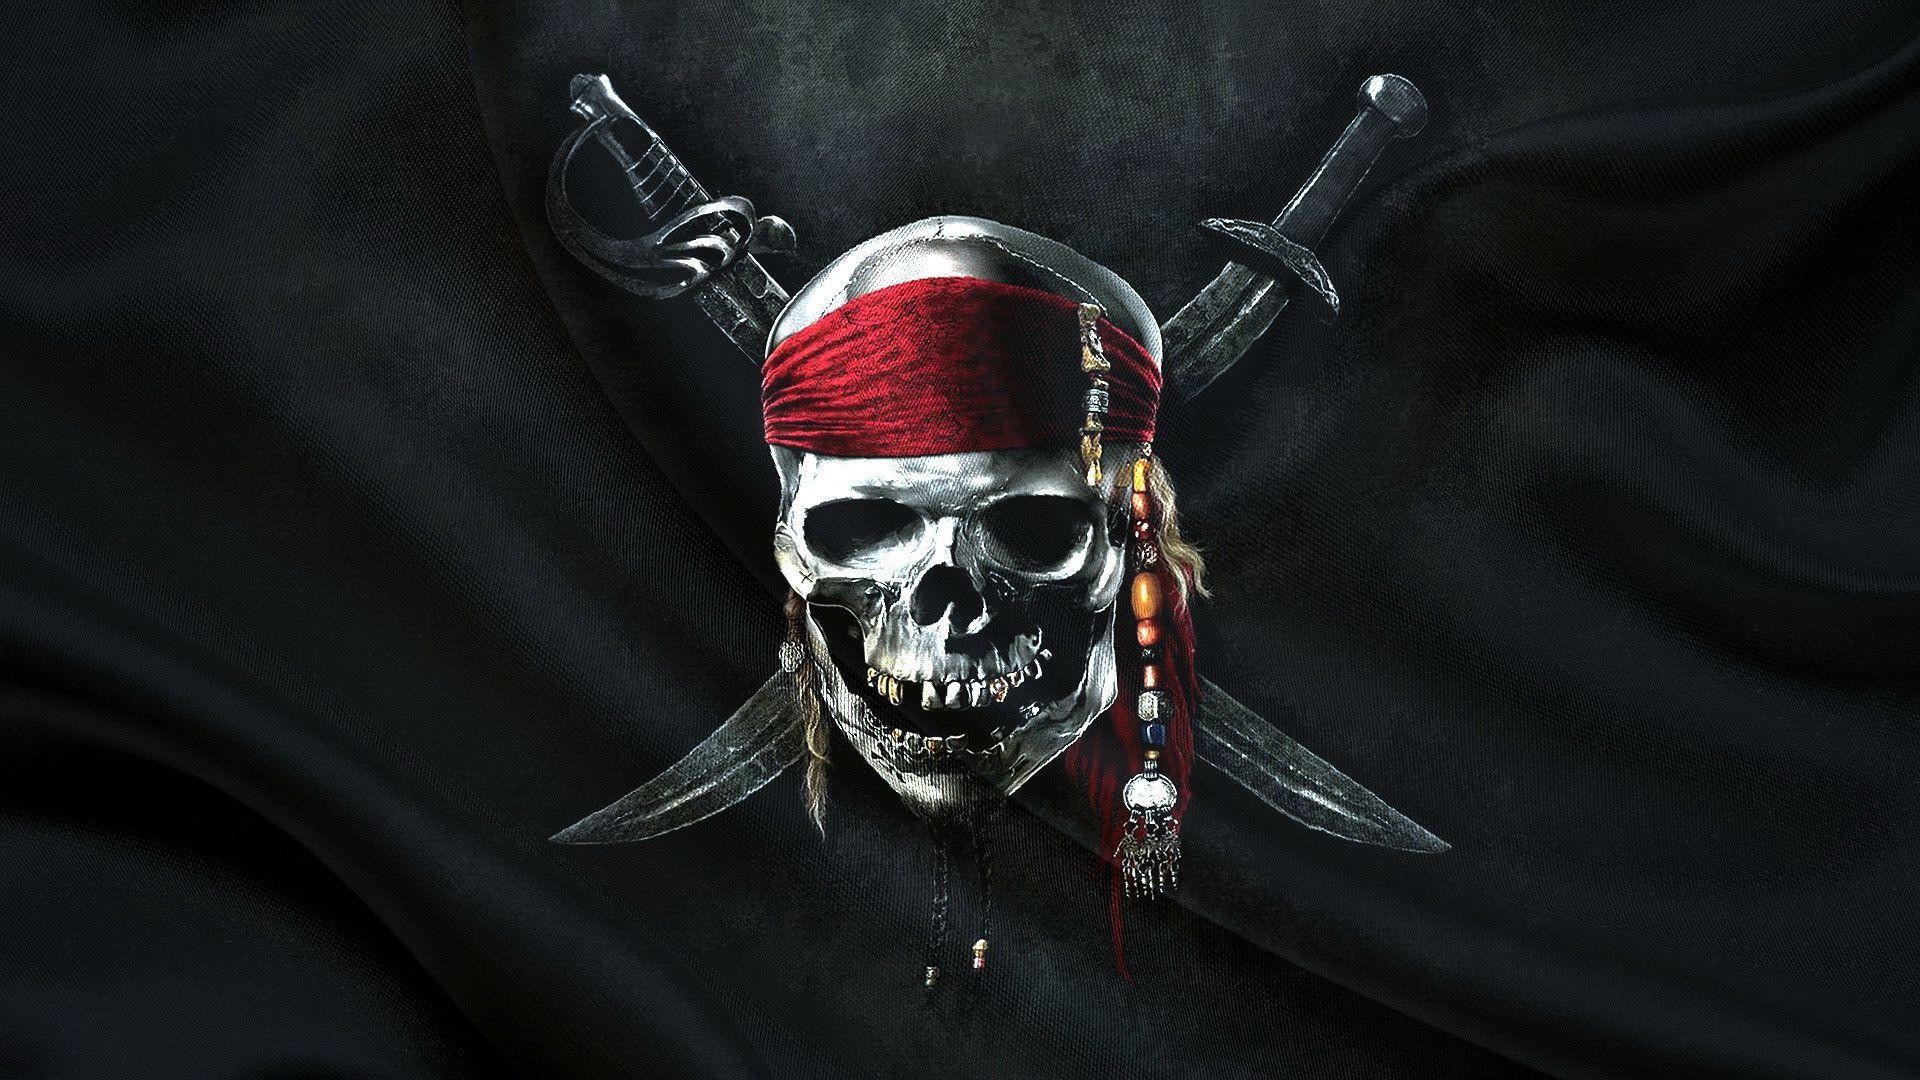 1920x1080 Jolly Roger Pirates Flag | Background and Texture